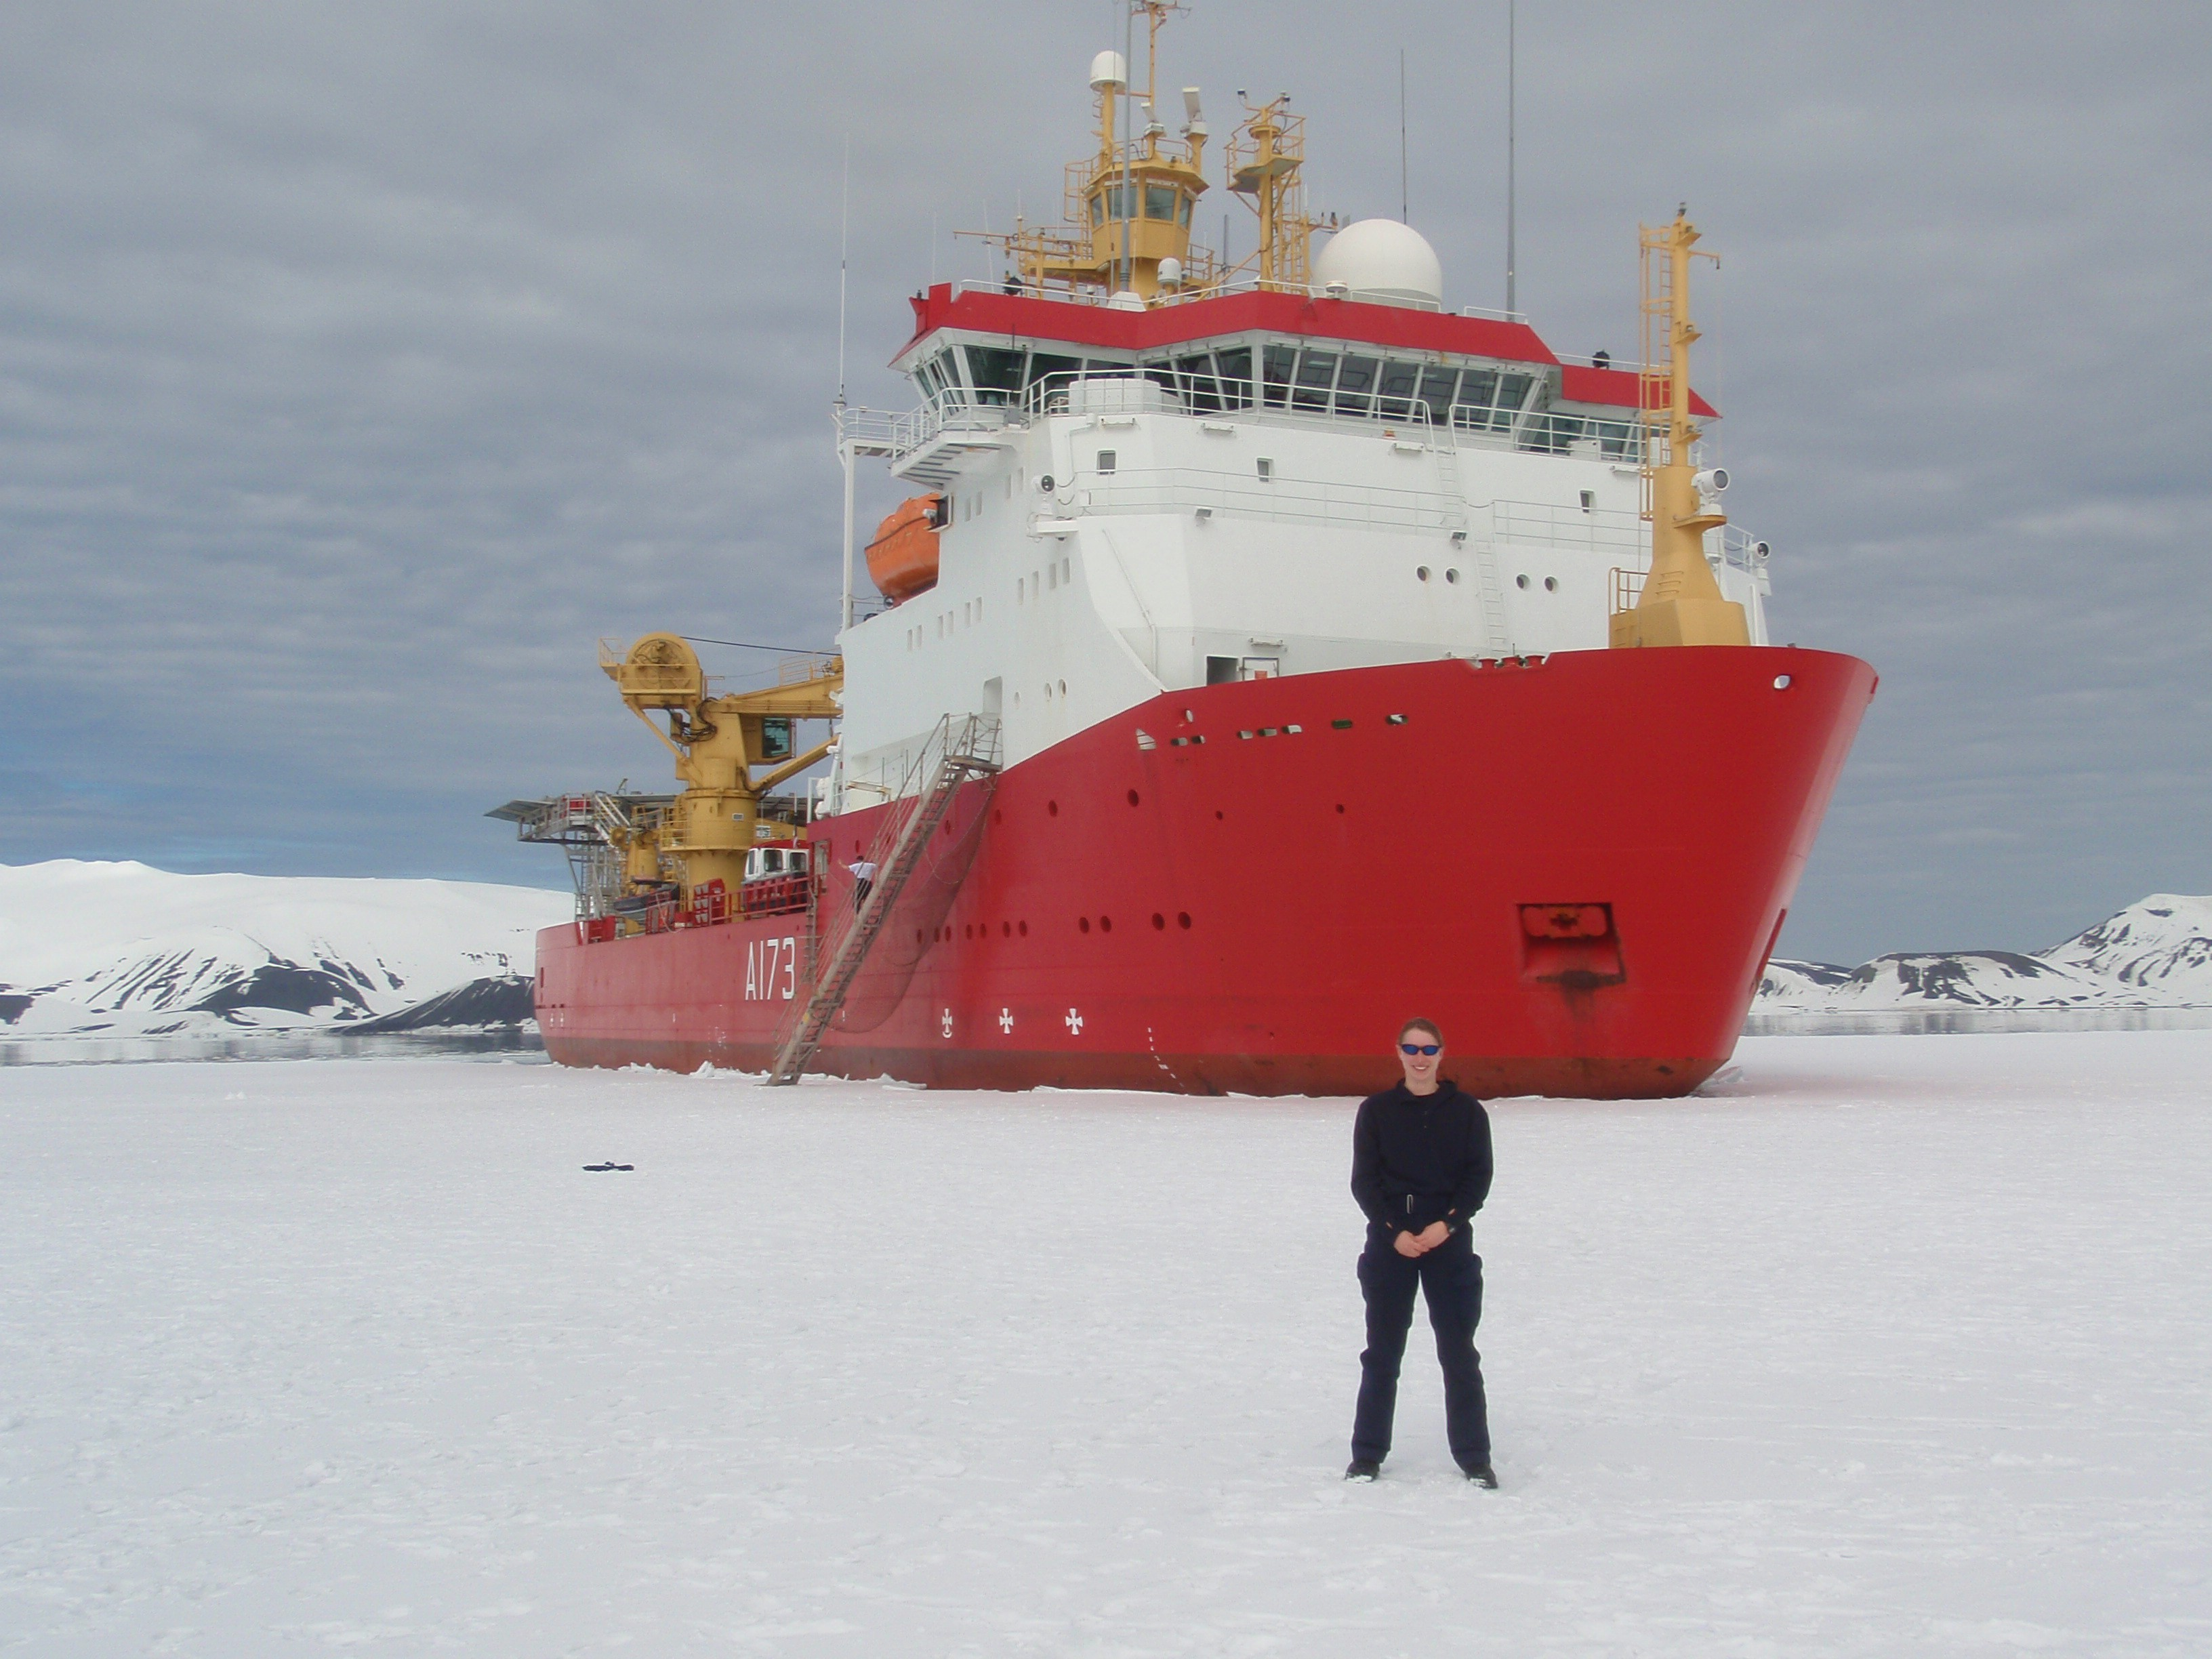 A woman stands in front of a red and white ship and a landscape of snow and ice